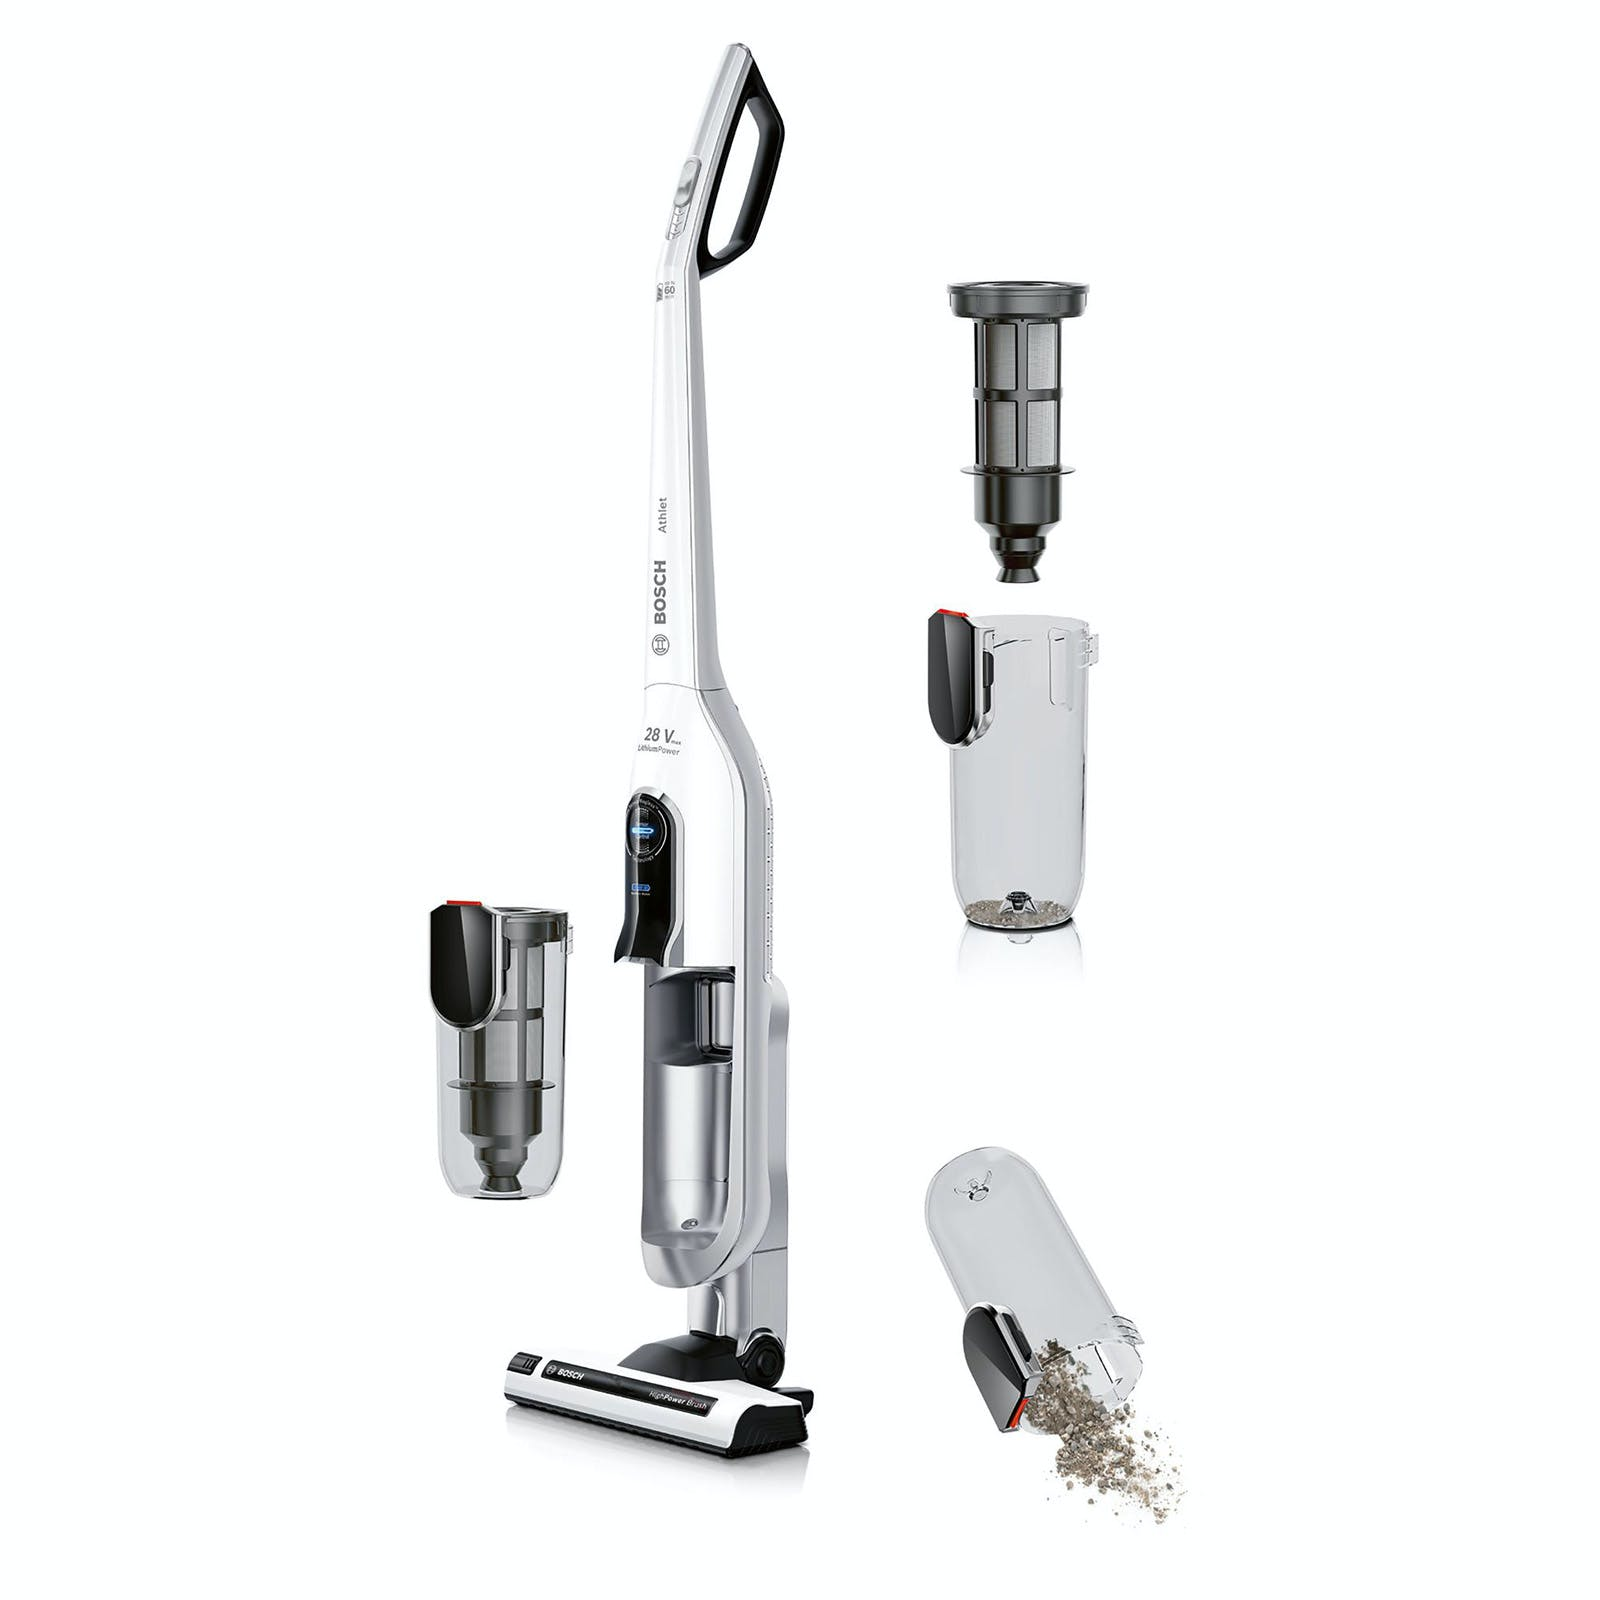 Bosch BBH62860 Athlet Cordless Bagless Vacuum Cleaner in